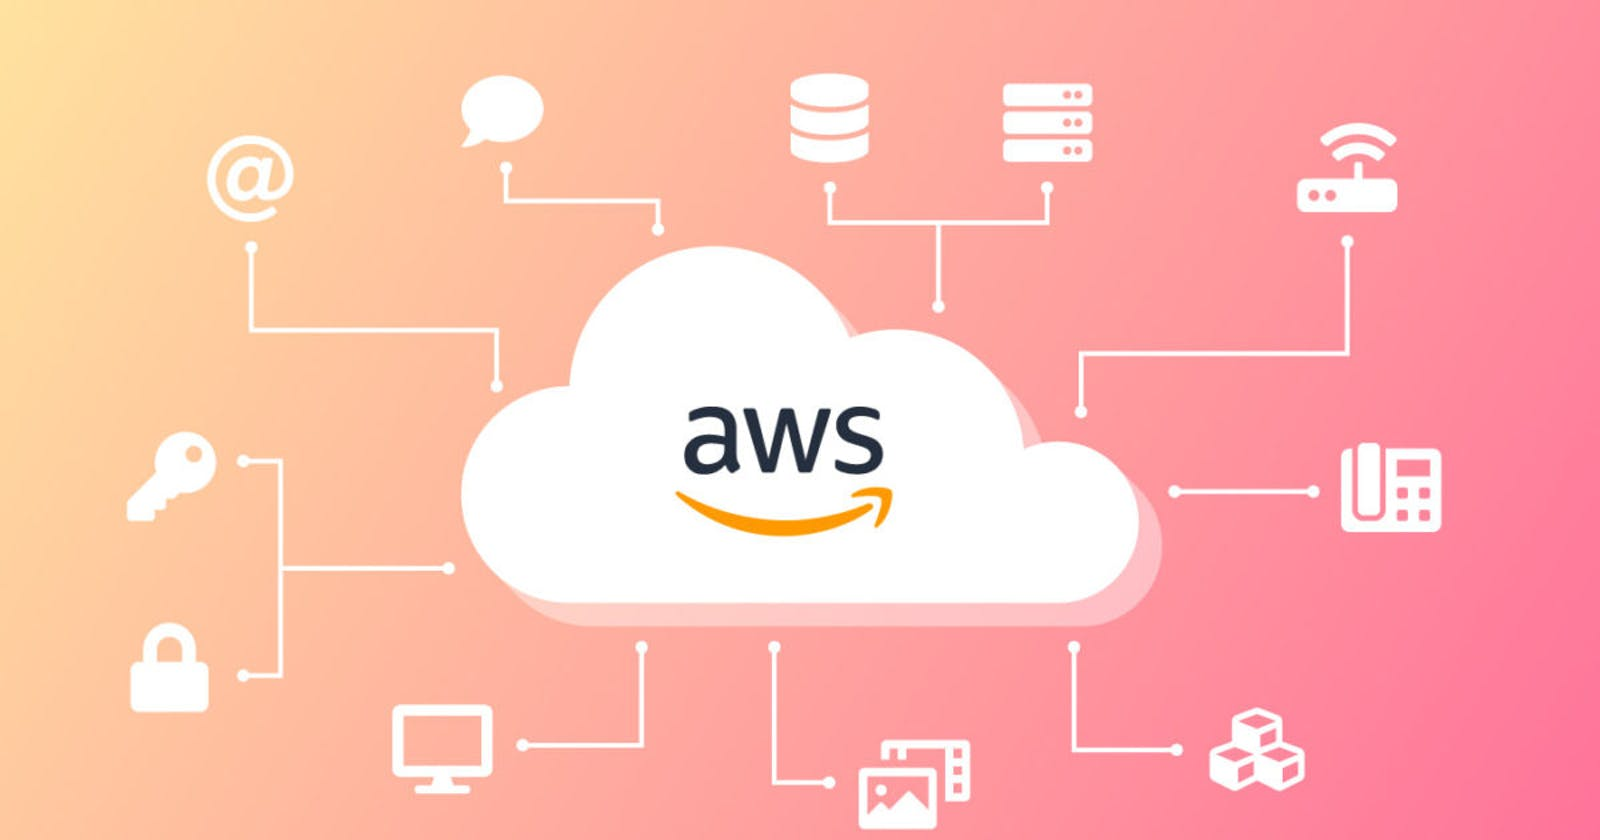 Run your own private cloud with dess in AWS